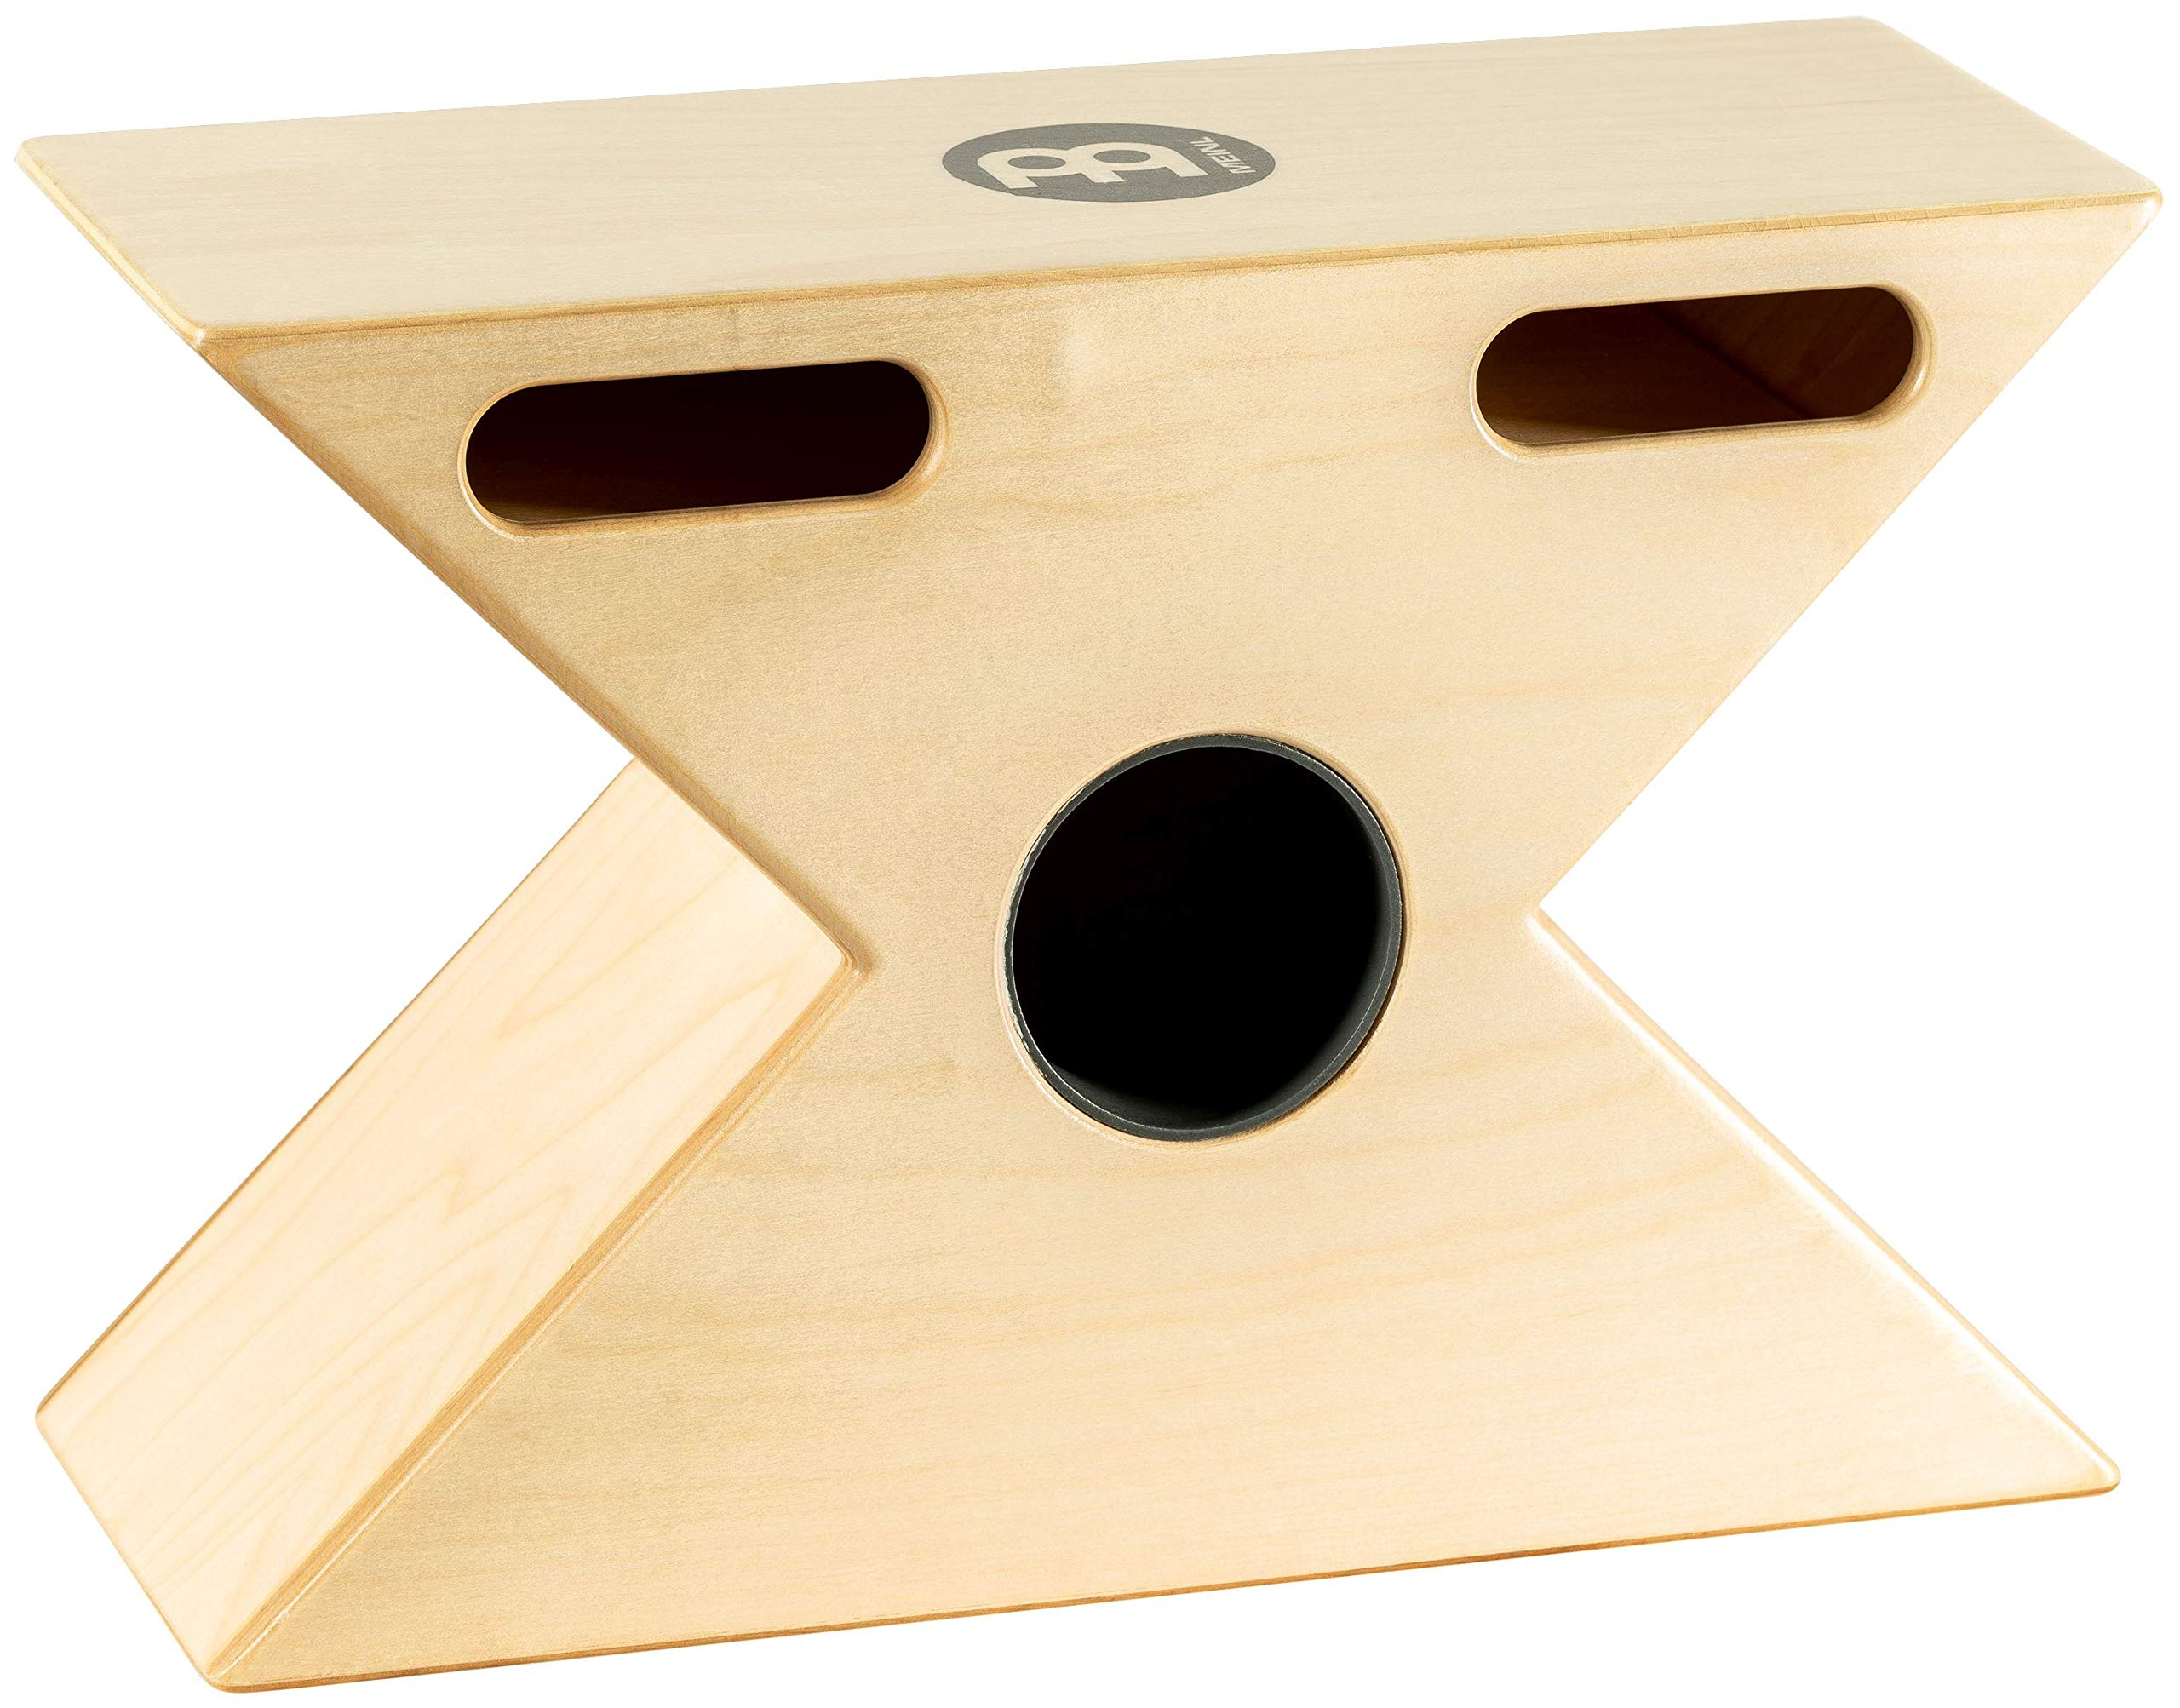 Meinl Hybrid Slaptop Cajon Box Drum with Snare and Bongo, Forward Sound Ports - MADE IN EUROPE - Baltic Birch Wood, 2-YEAR WARRANTY (HTOPCAJ3NT) by Meinl Percussion